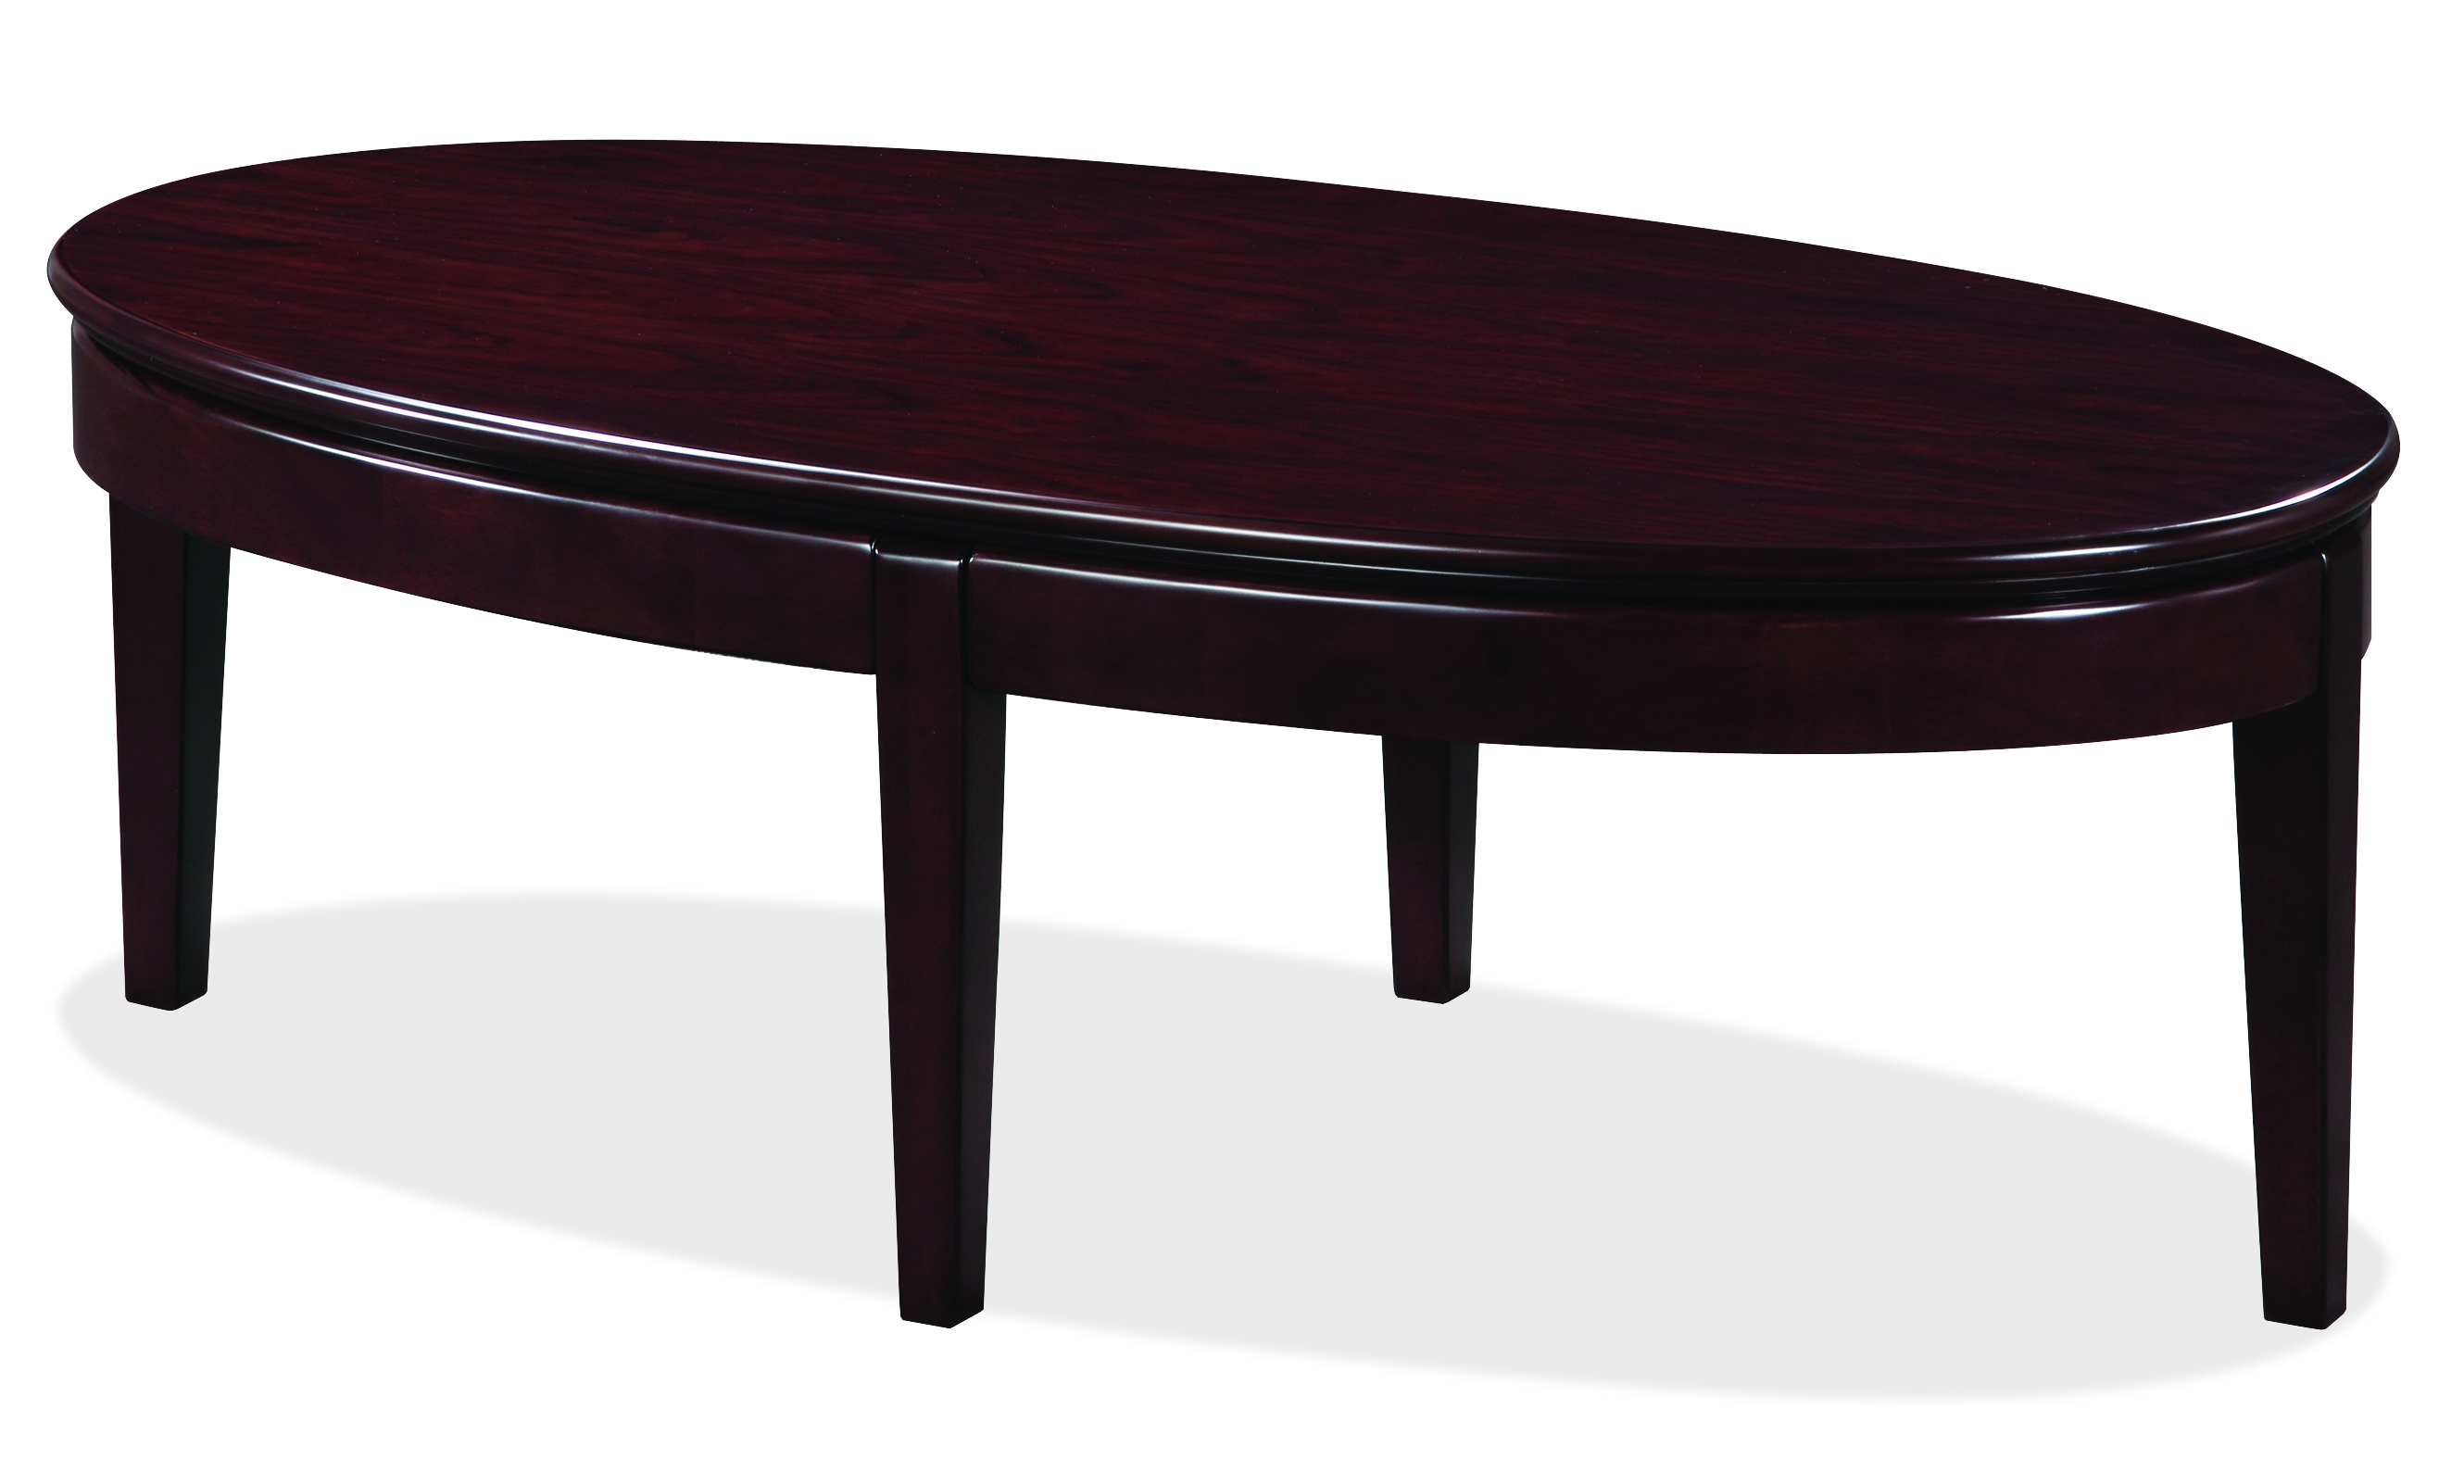 pv veneer series tables by office source vision office interiors